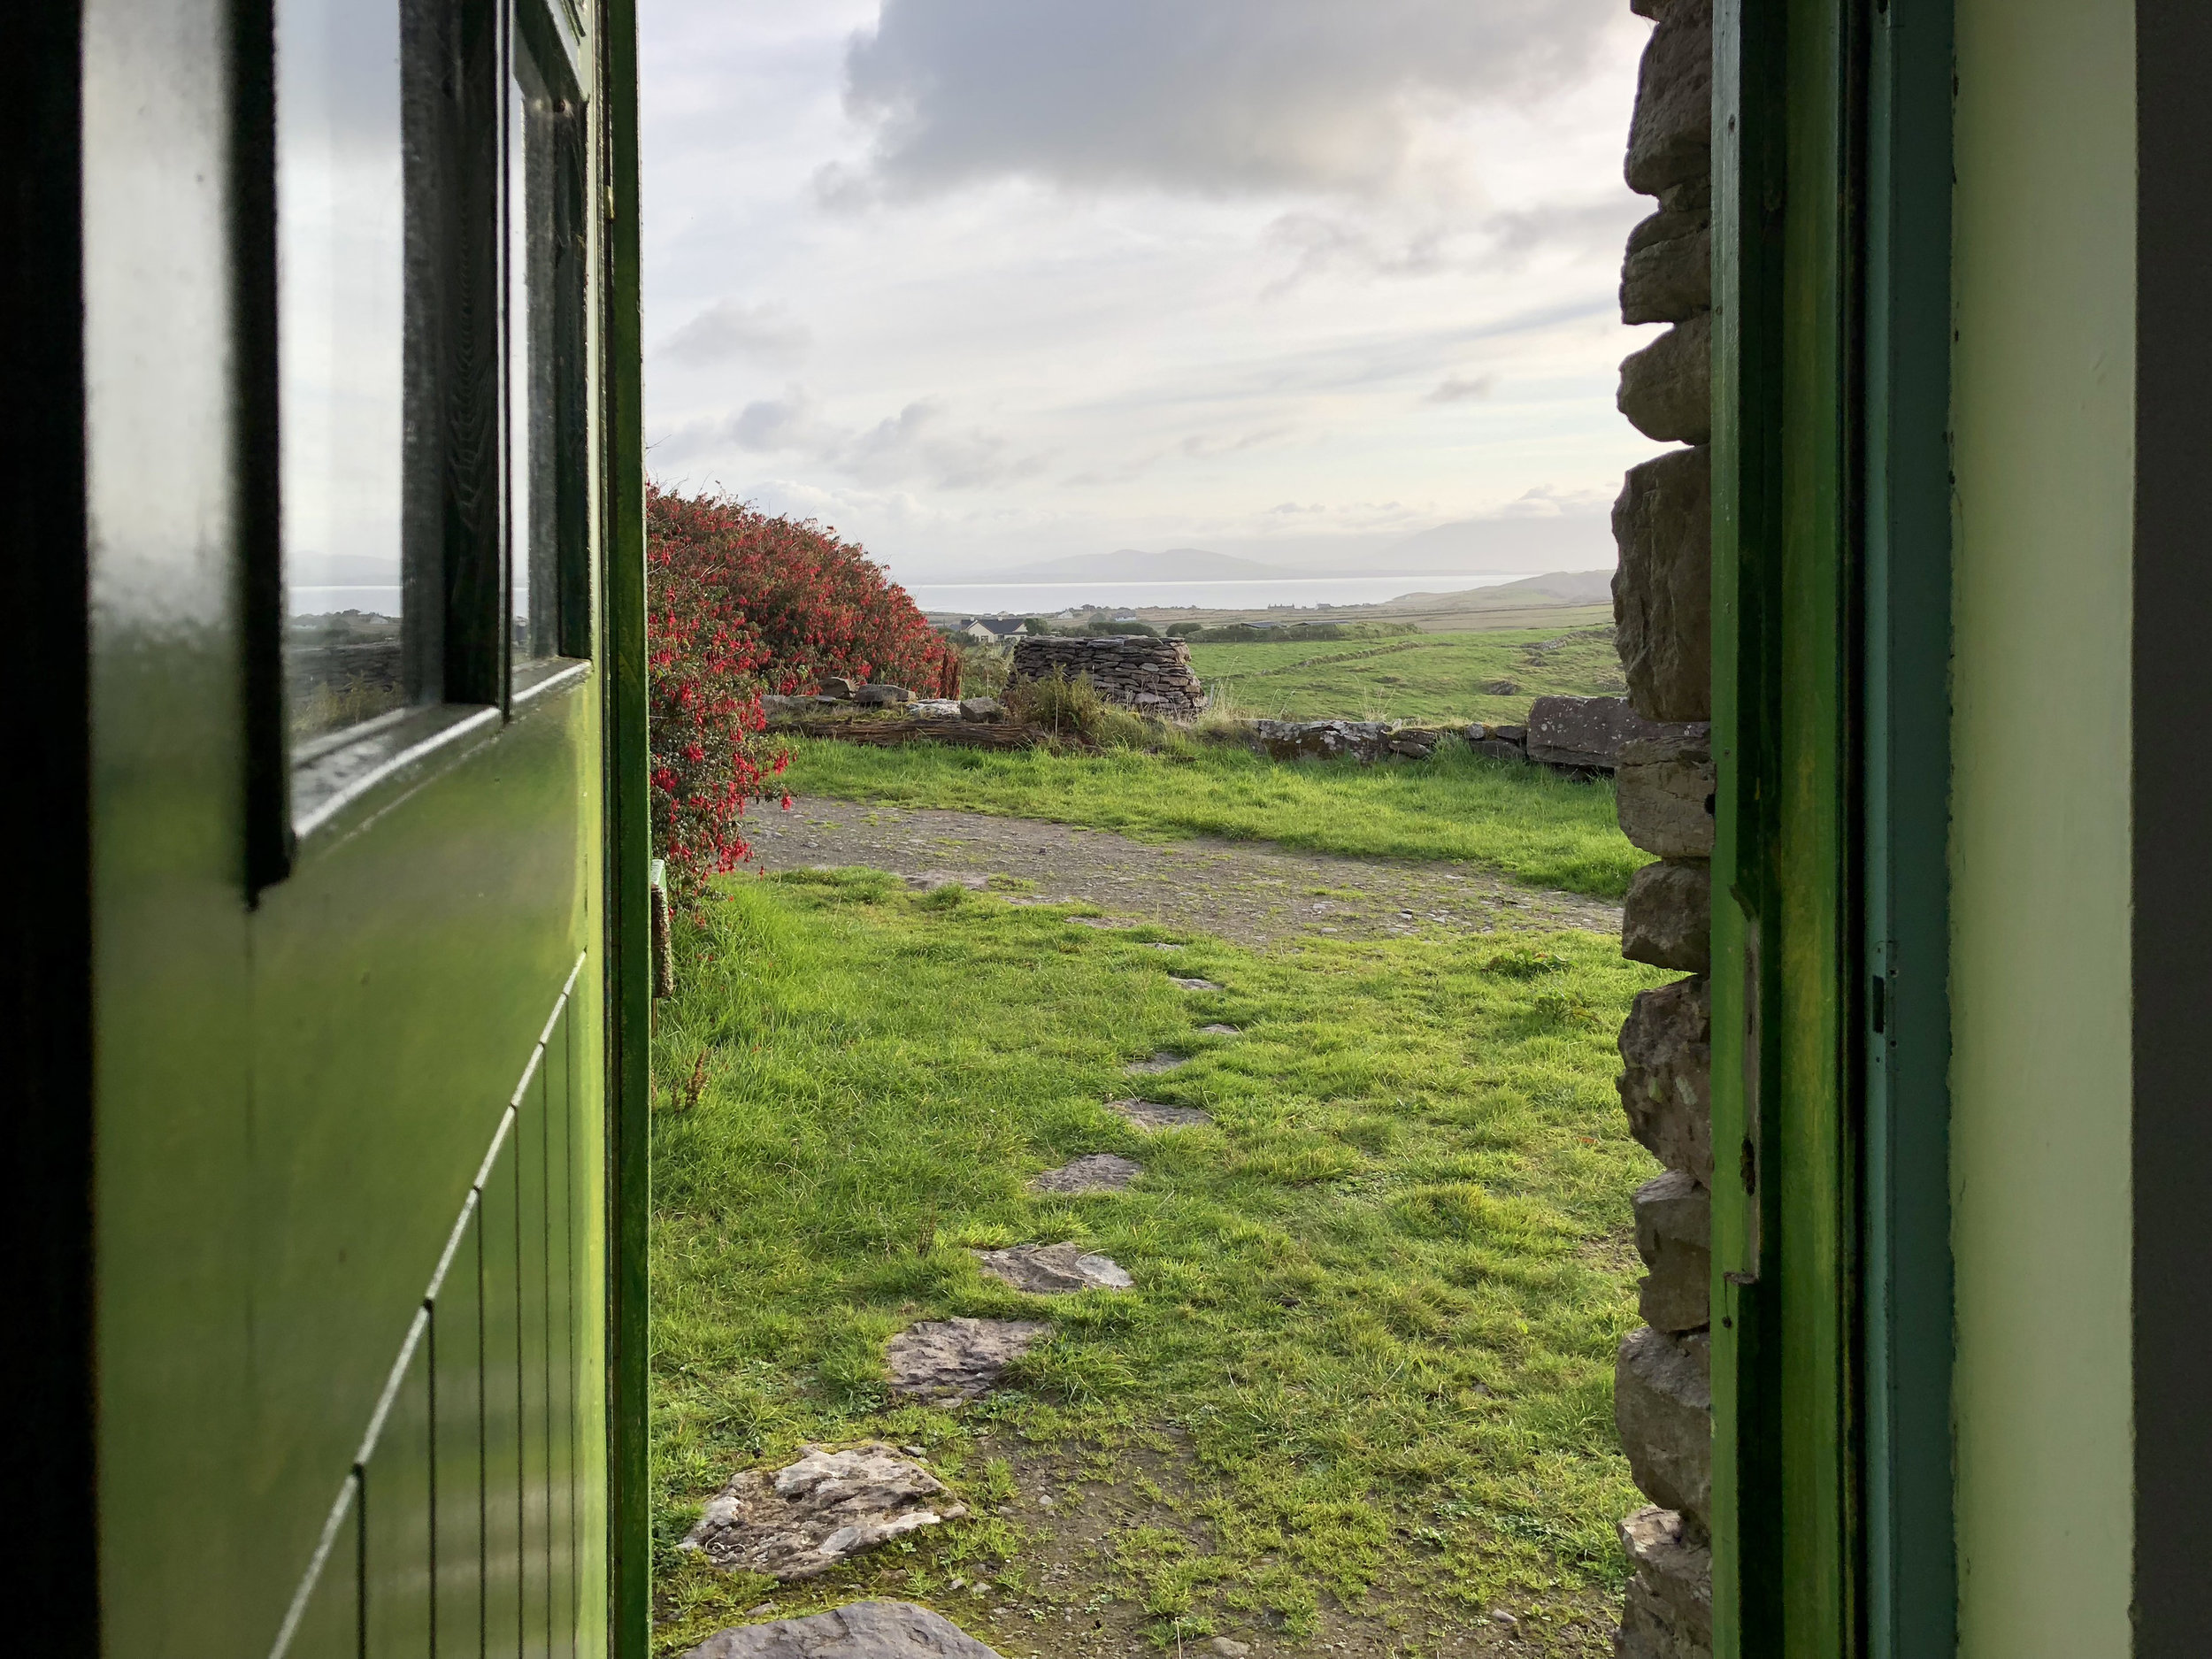 The view looking out my cottage door at Cill Rialaig Artist Retreat in Ballinskelligs, Ireland. Oct. 2018